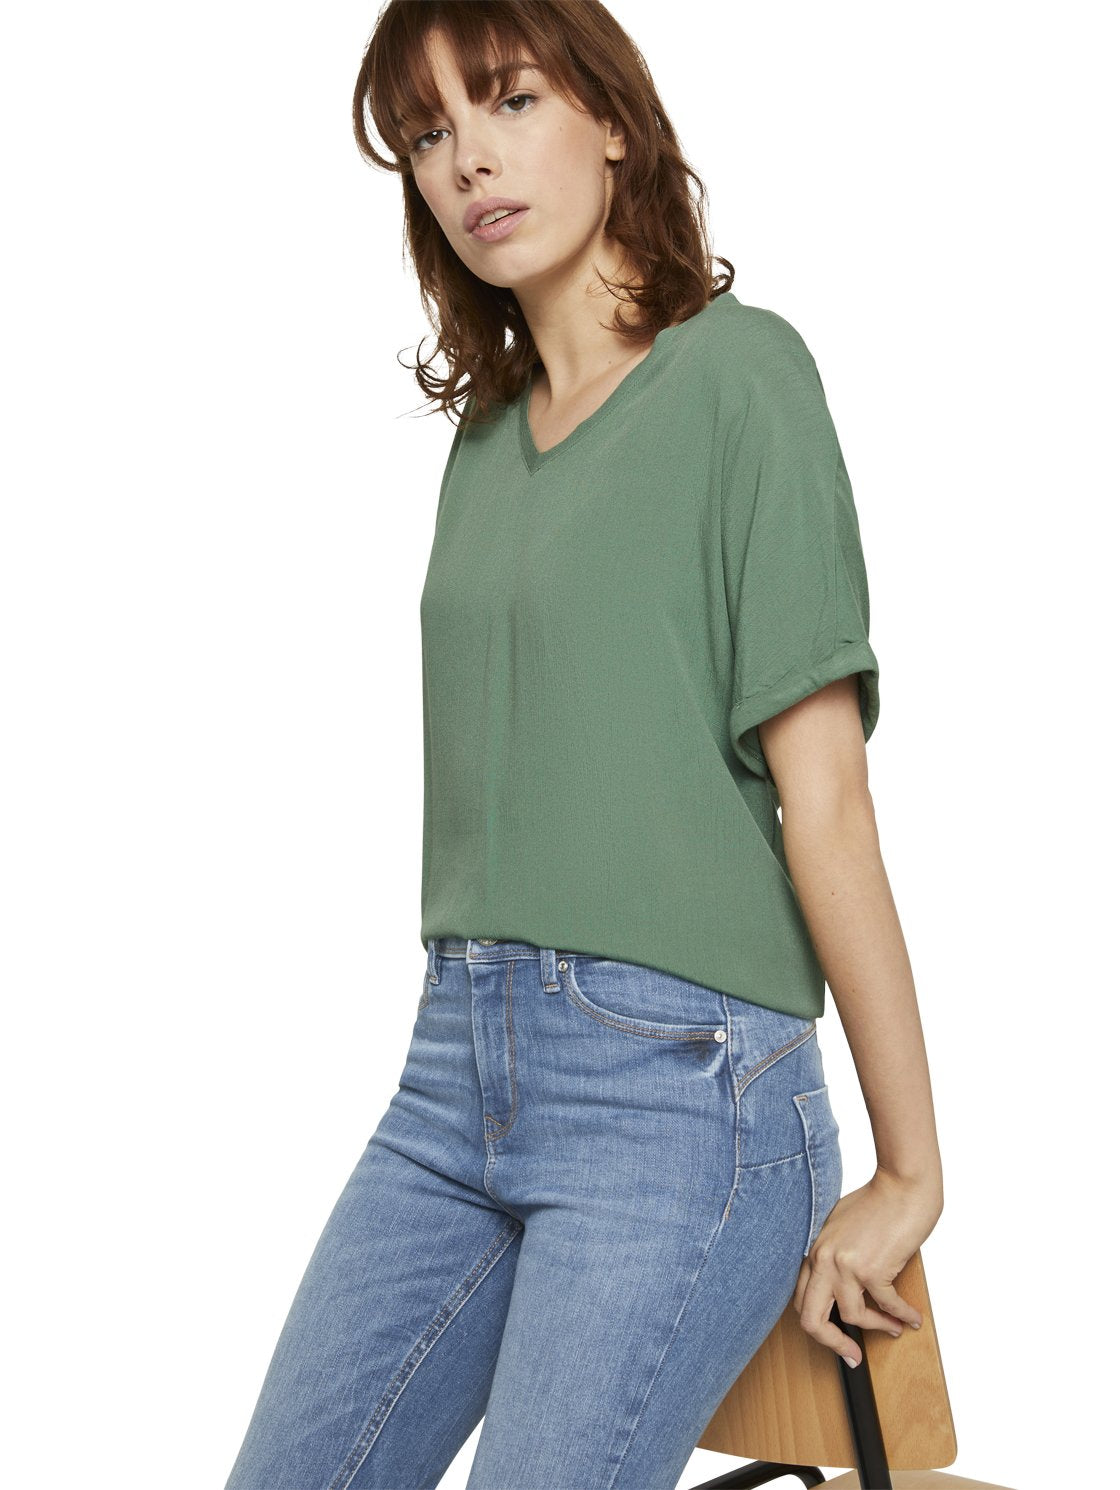 Tom Tailor green top 1021553